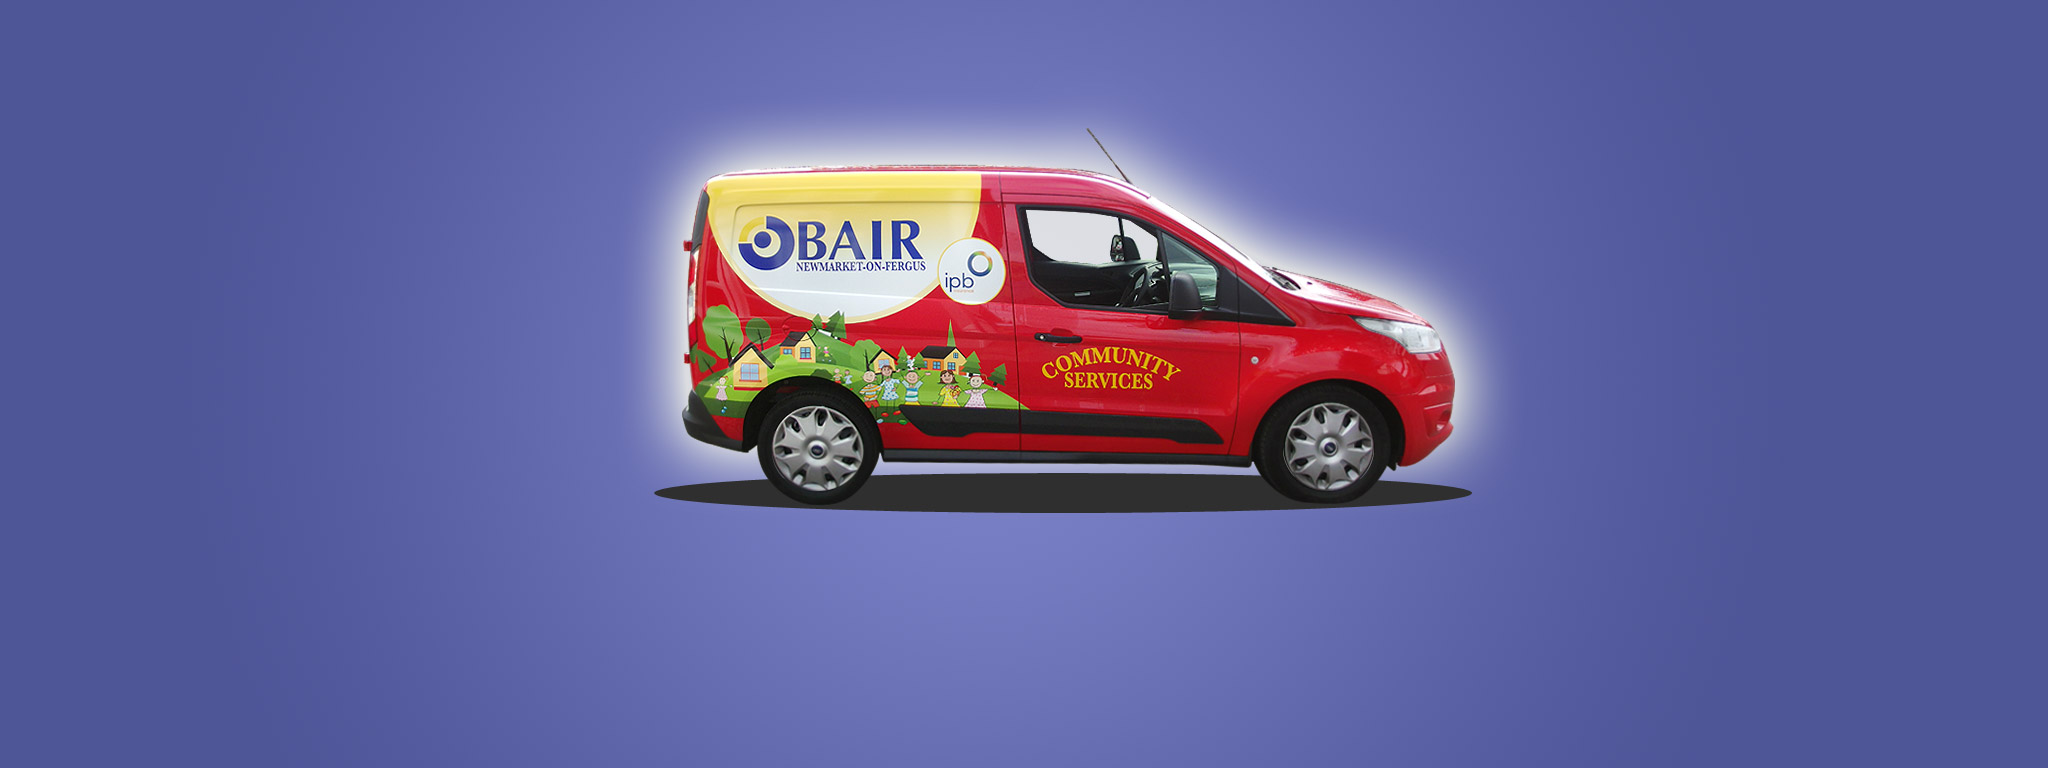 Community catering has a brand new van